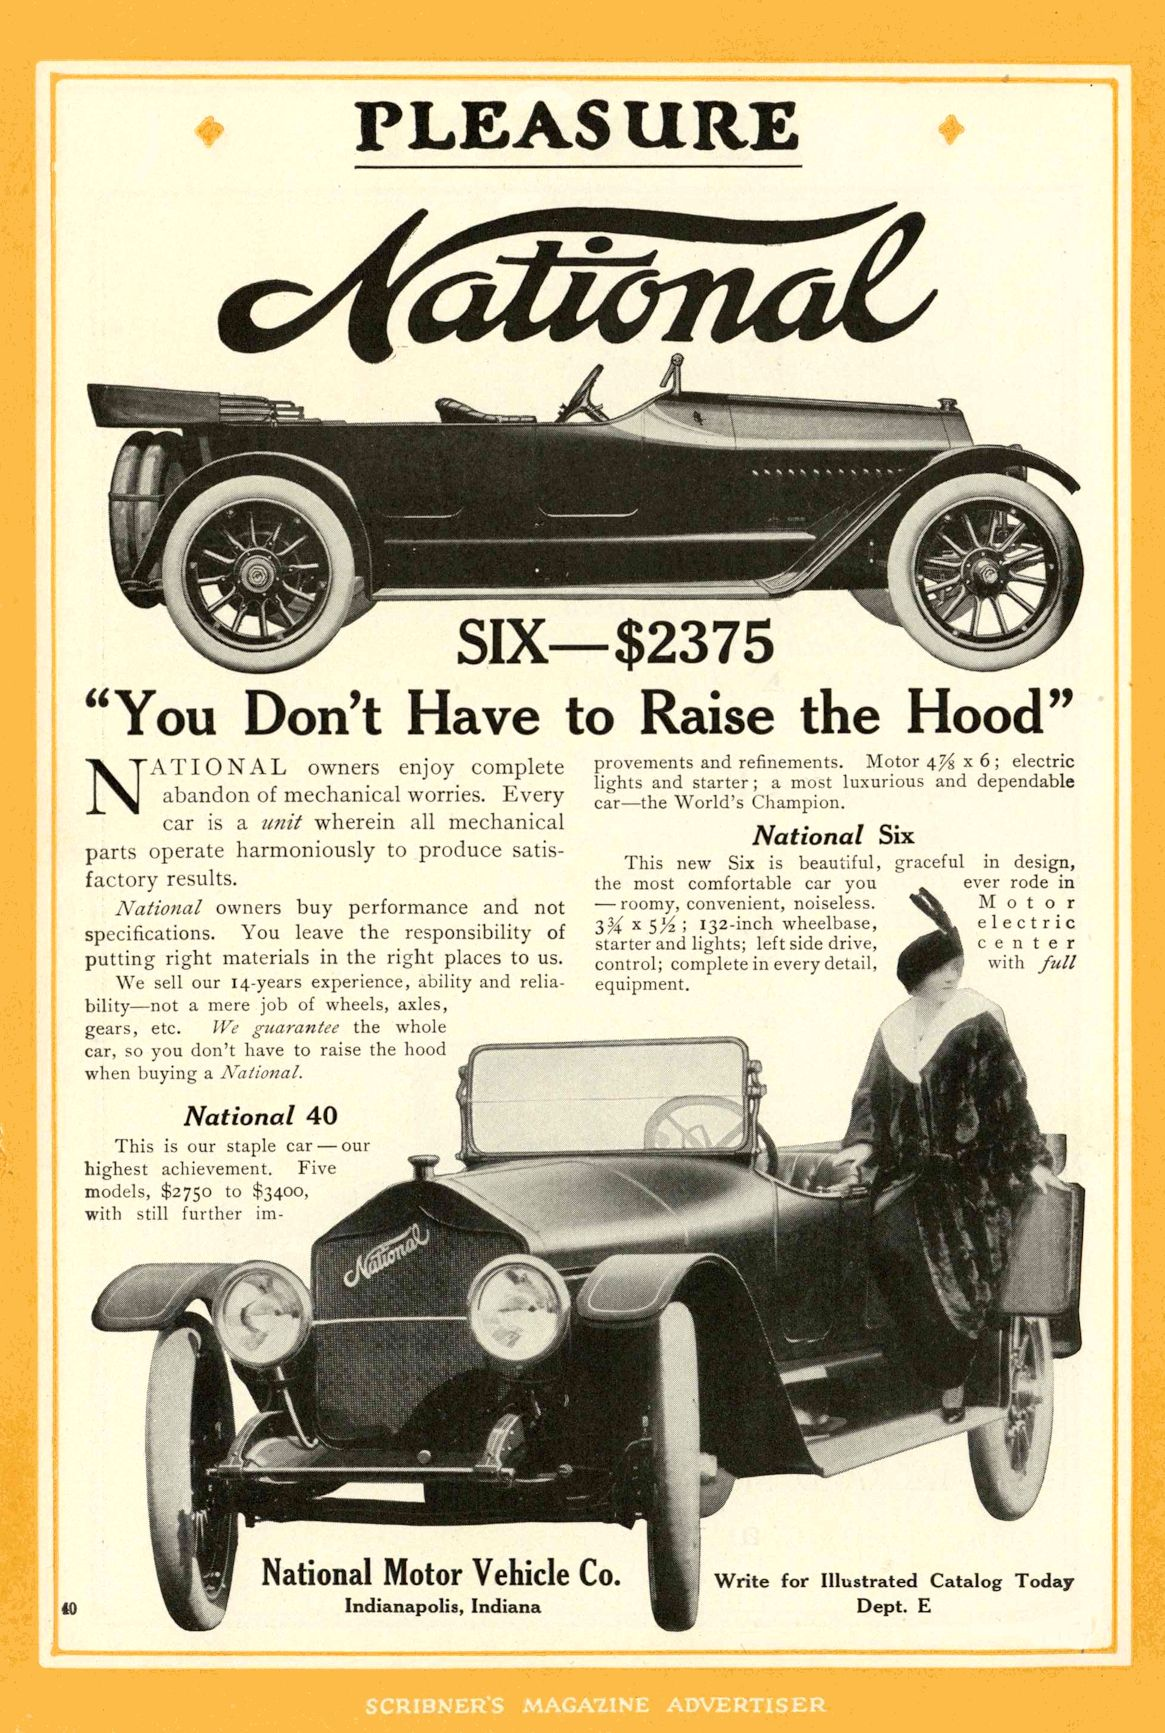 """1914 NATIONAL """"You Don't Have to Raise the Hood"""" National Motor Vehicle Company Indianapolis, IND SCRIBNER'S MAGAZINE ADVERTISER 1914 6.5″x10″ page 40"""